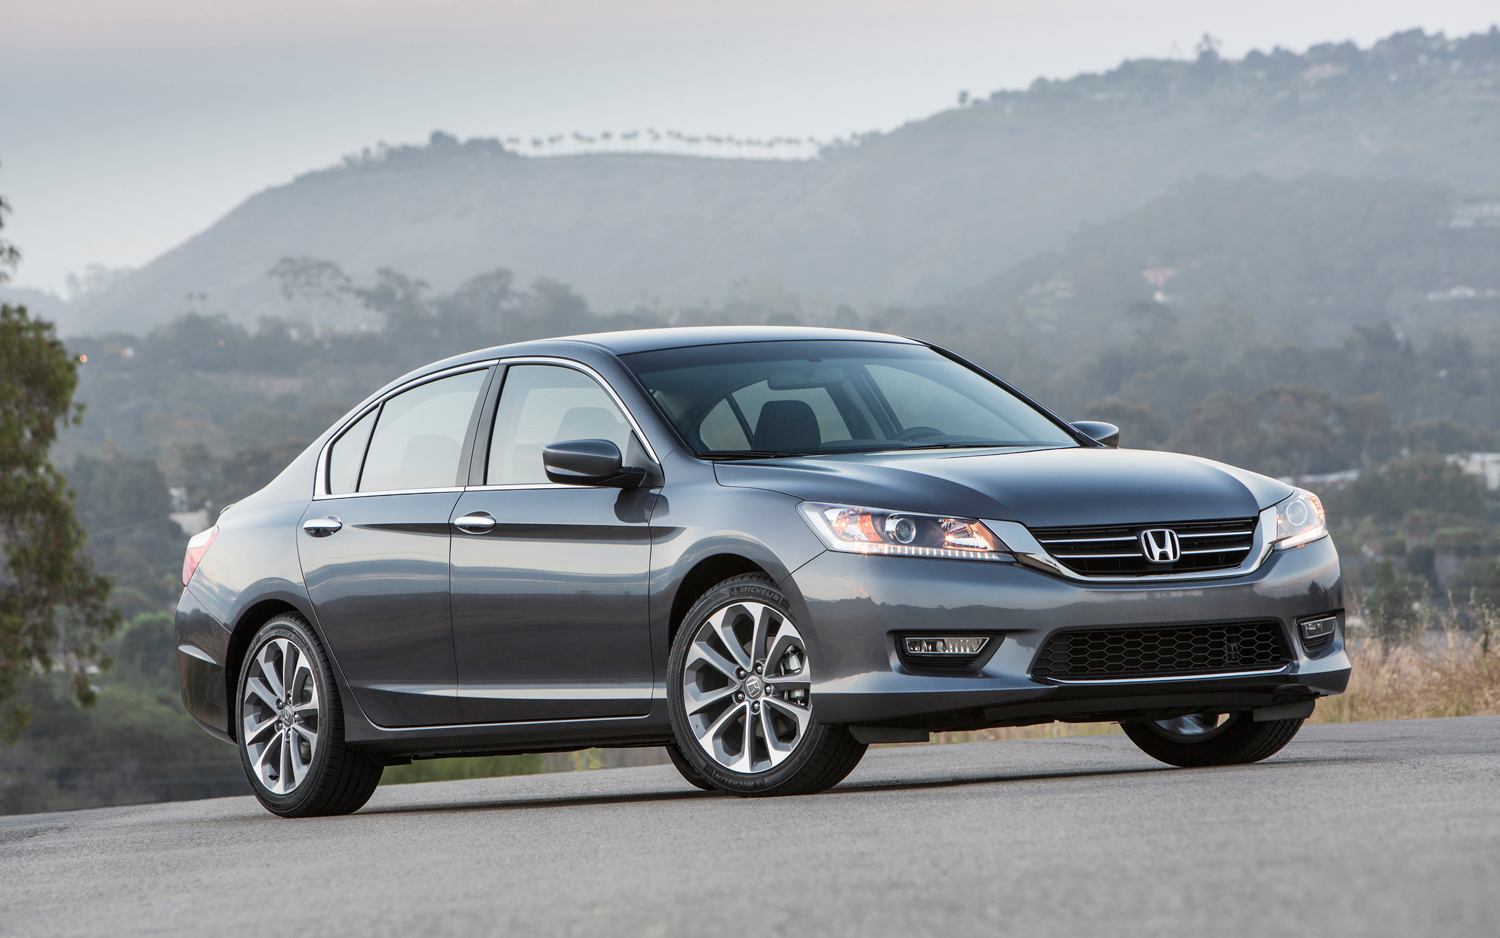 2013 Honda Accord LX sedan: $22,470-6M, $23,270-CVT